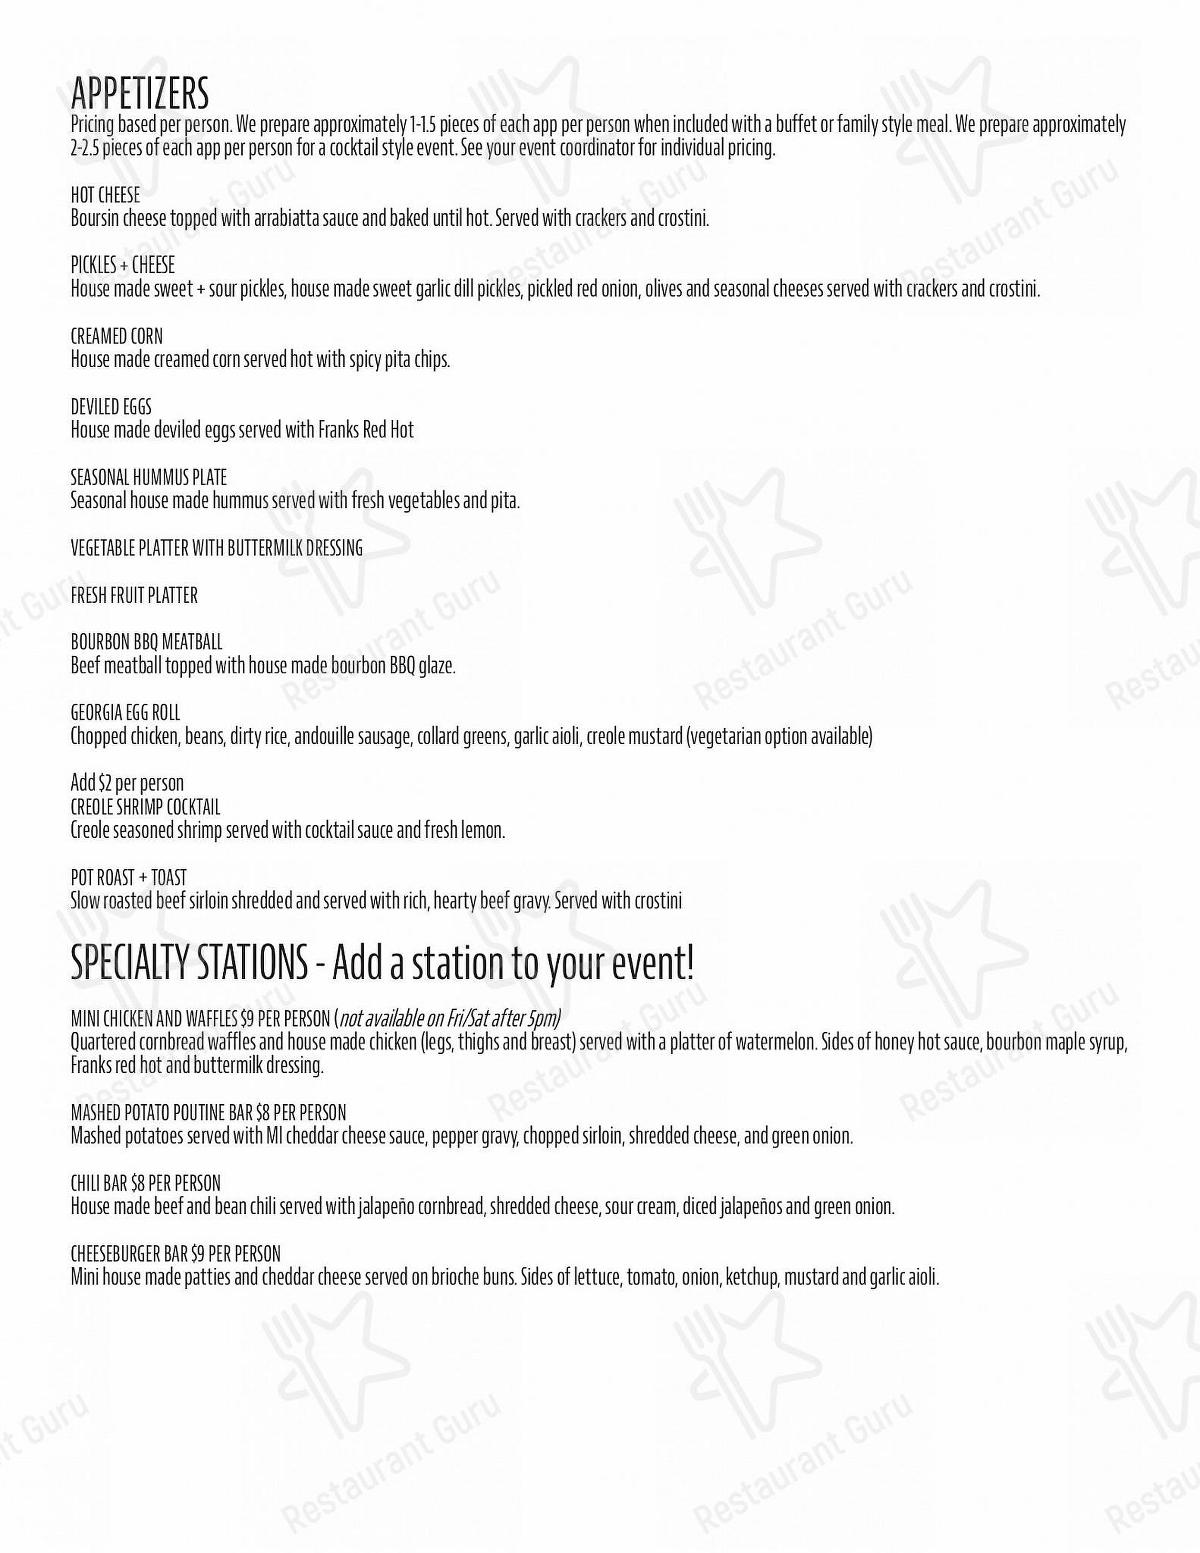 One Bourbon menu - meals and drinks